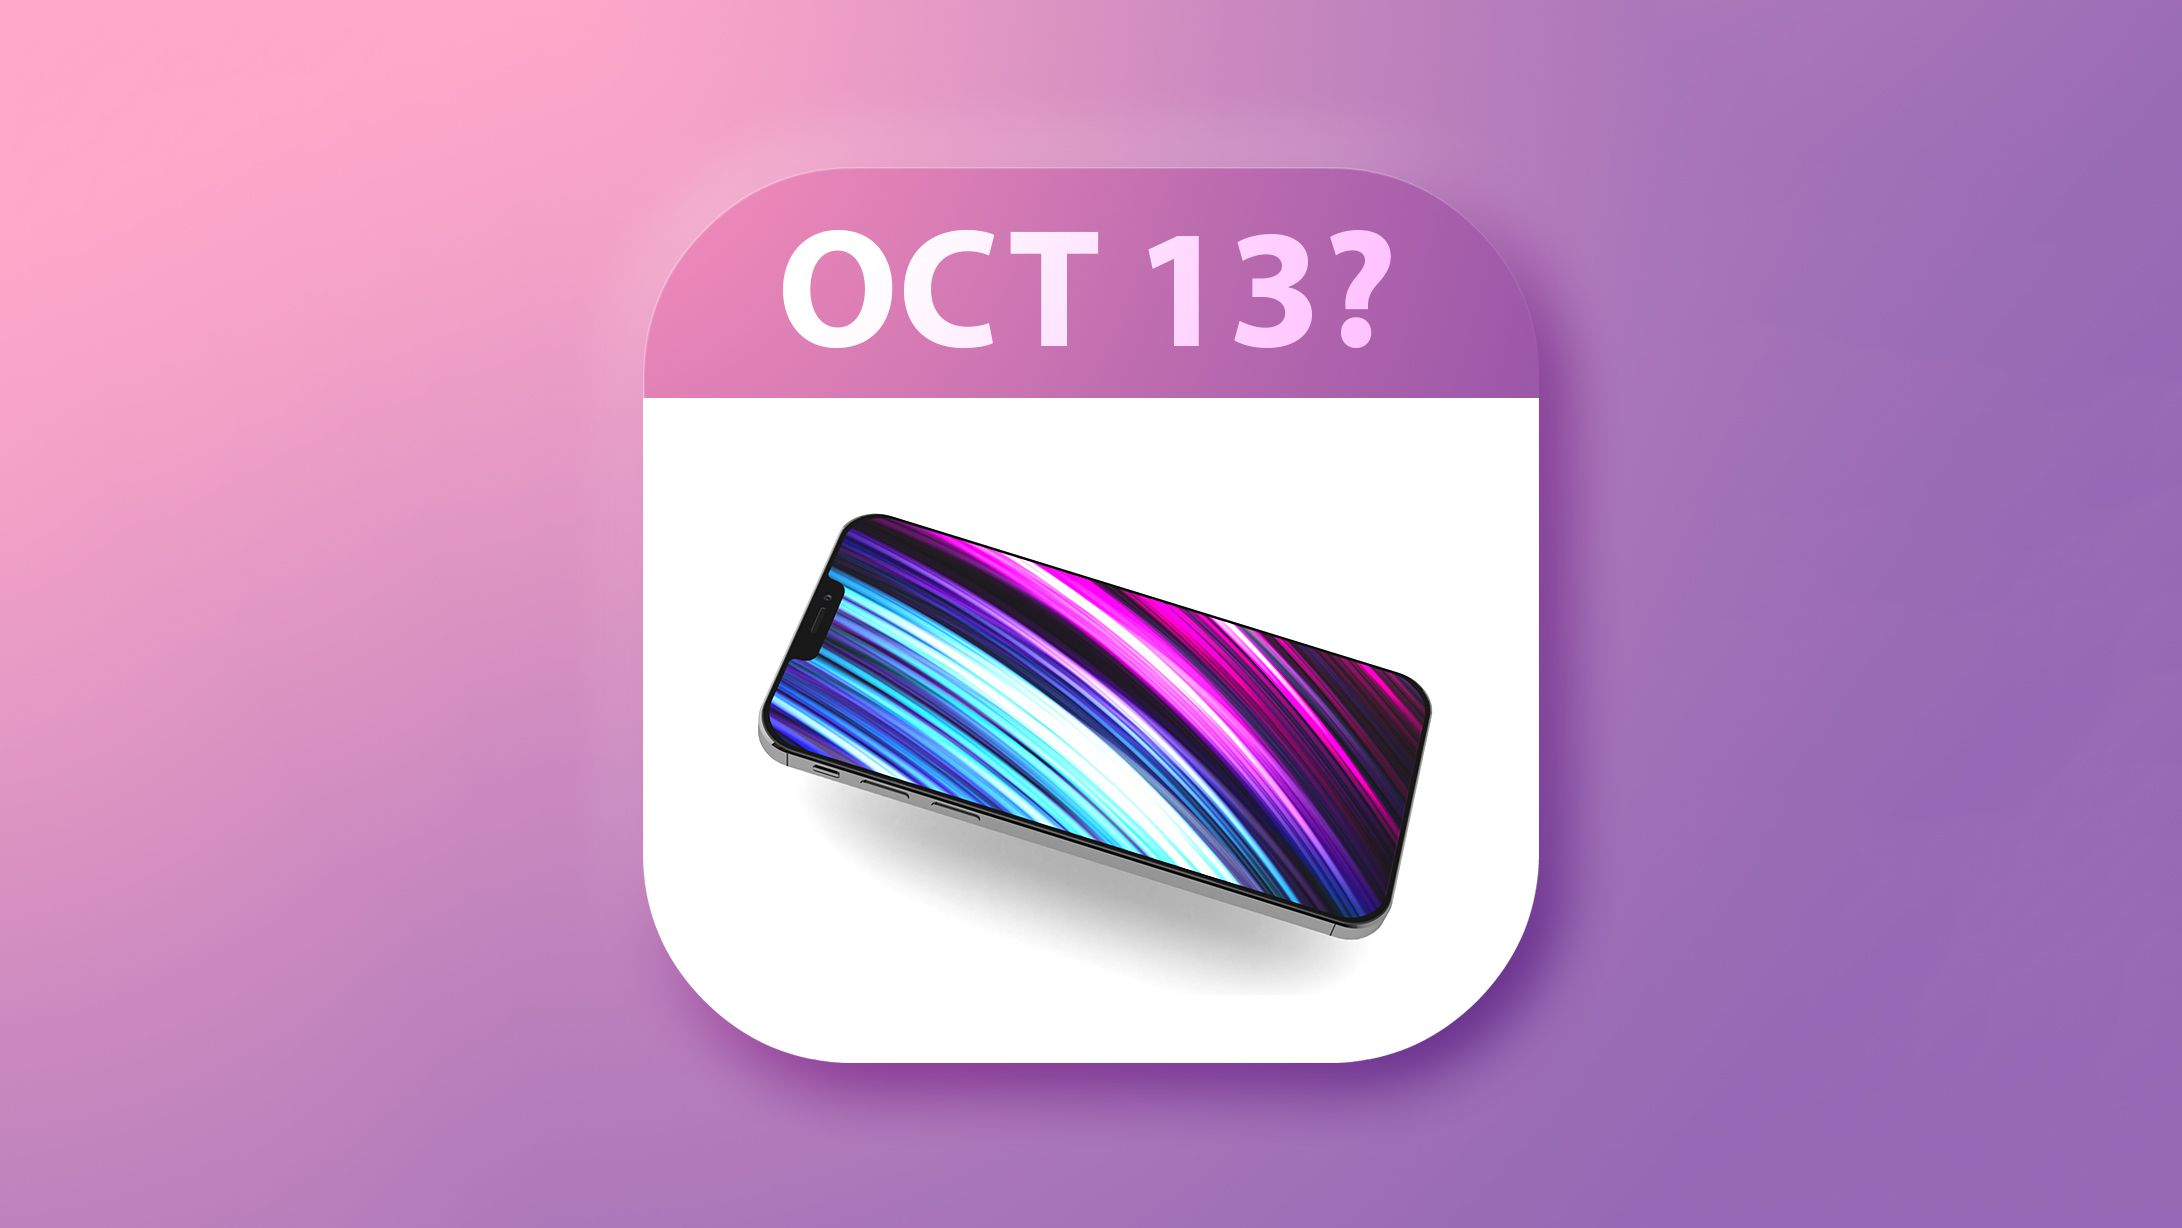 Apple S Iphone 12 Event Could Happen On October 13 Based On Rumors From Mobile Operators Macrumors